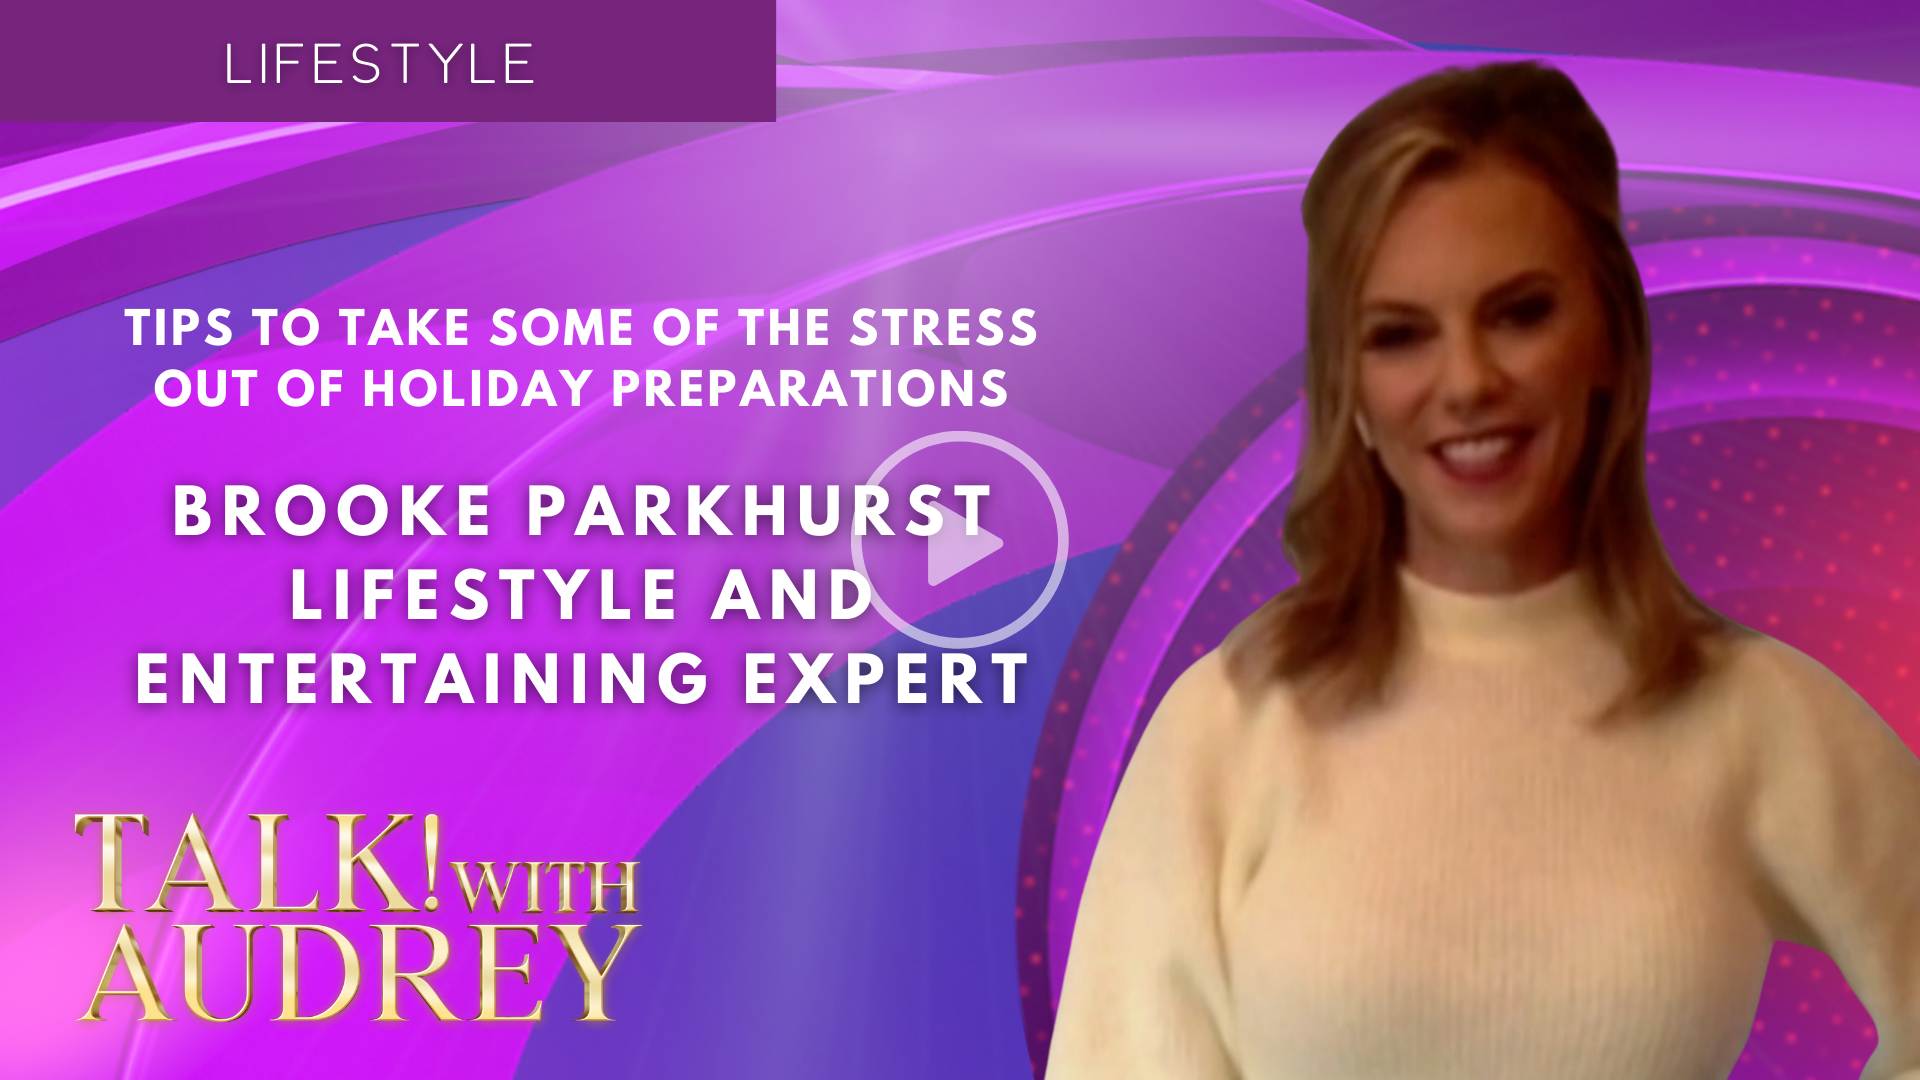 Brooke Parkhurst – Tips To Take Some Of The Stress Out of Holiday Preparations